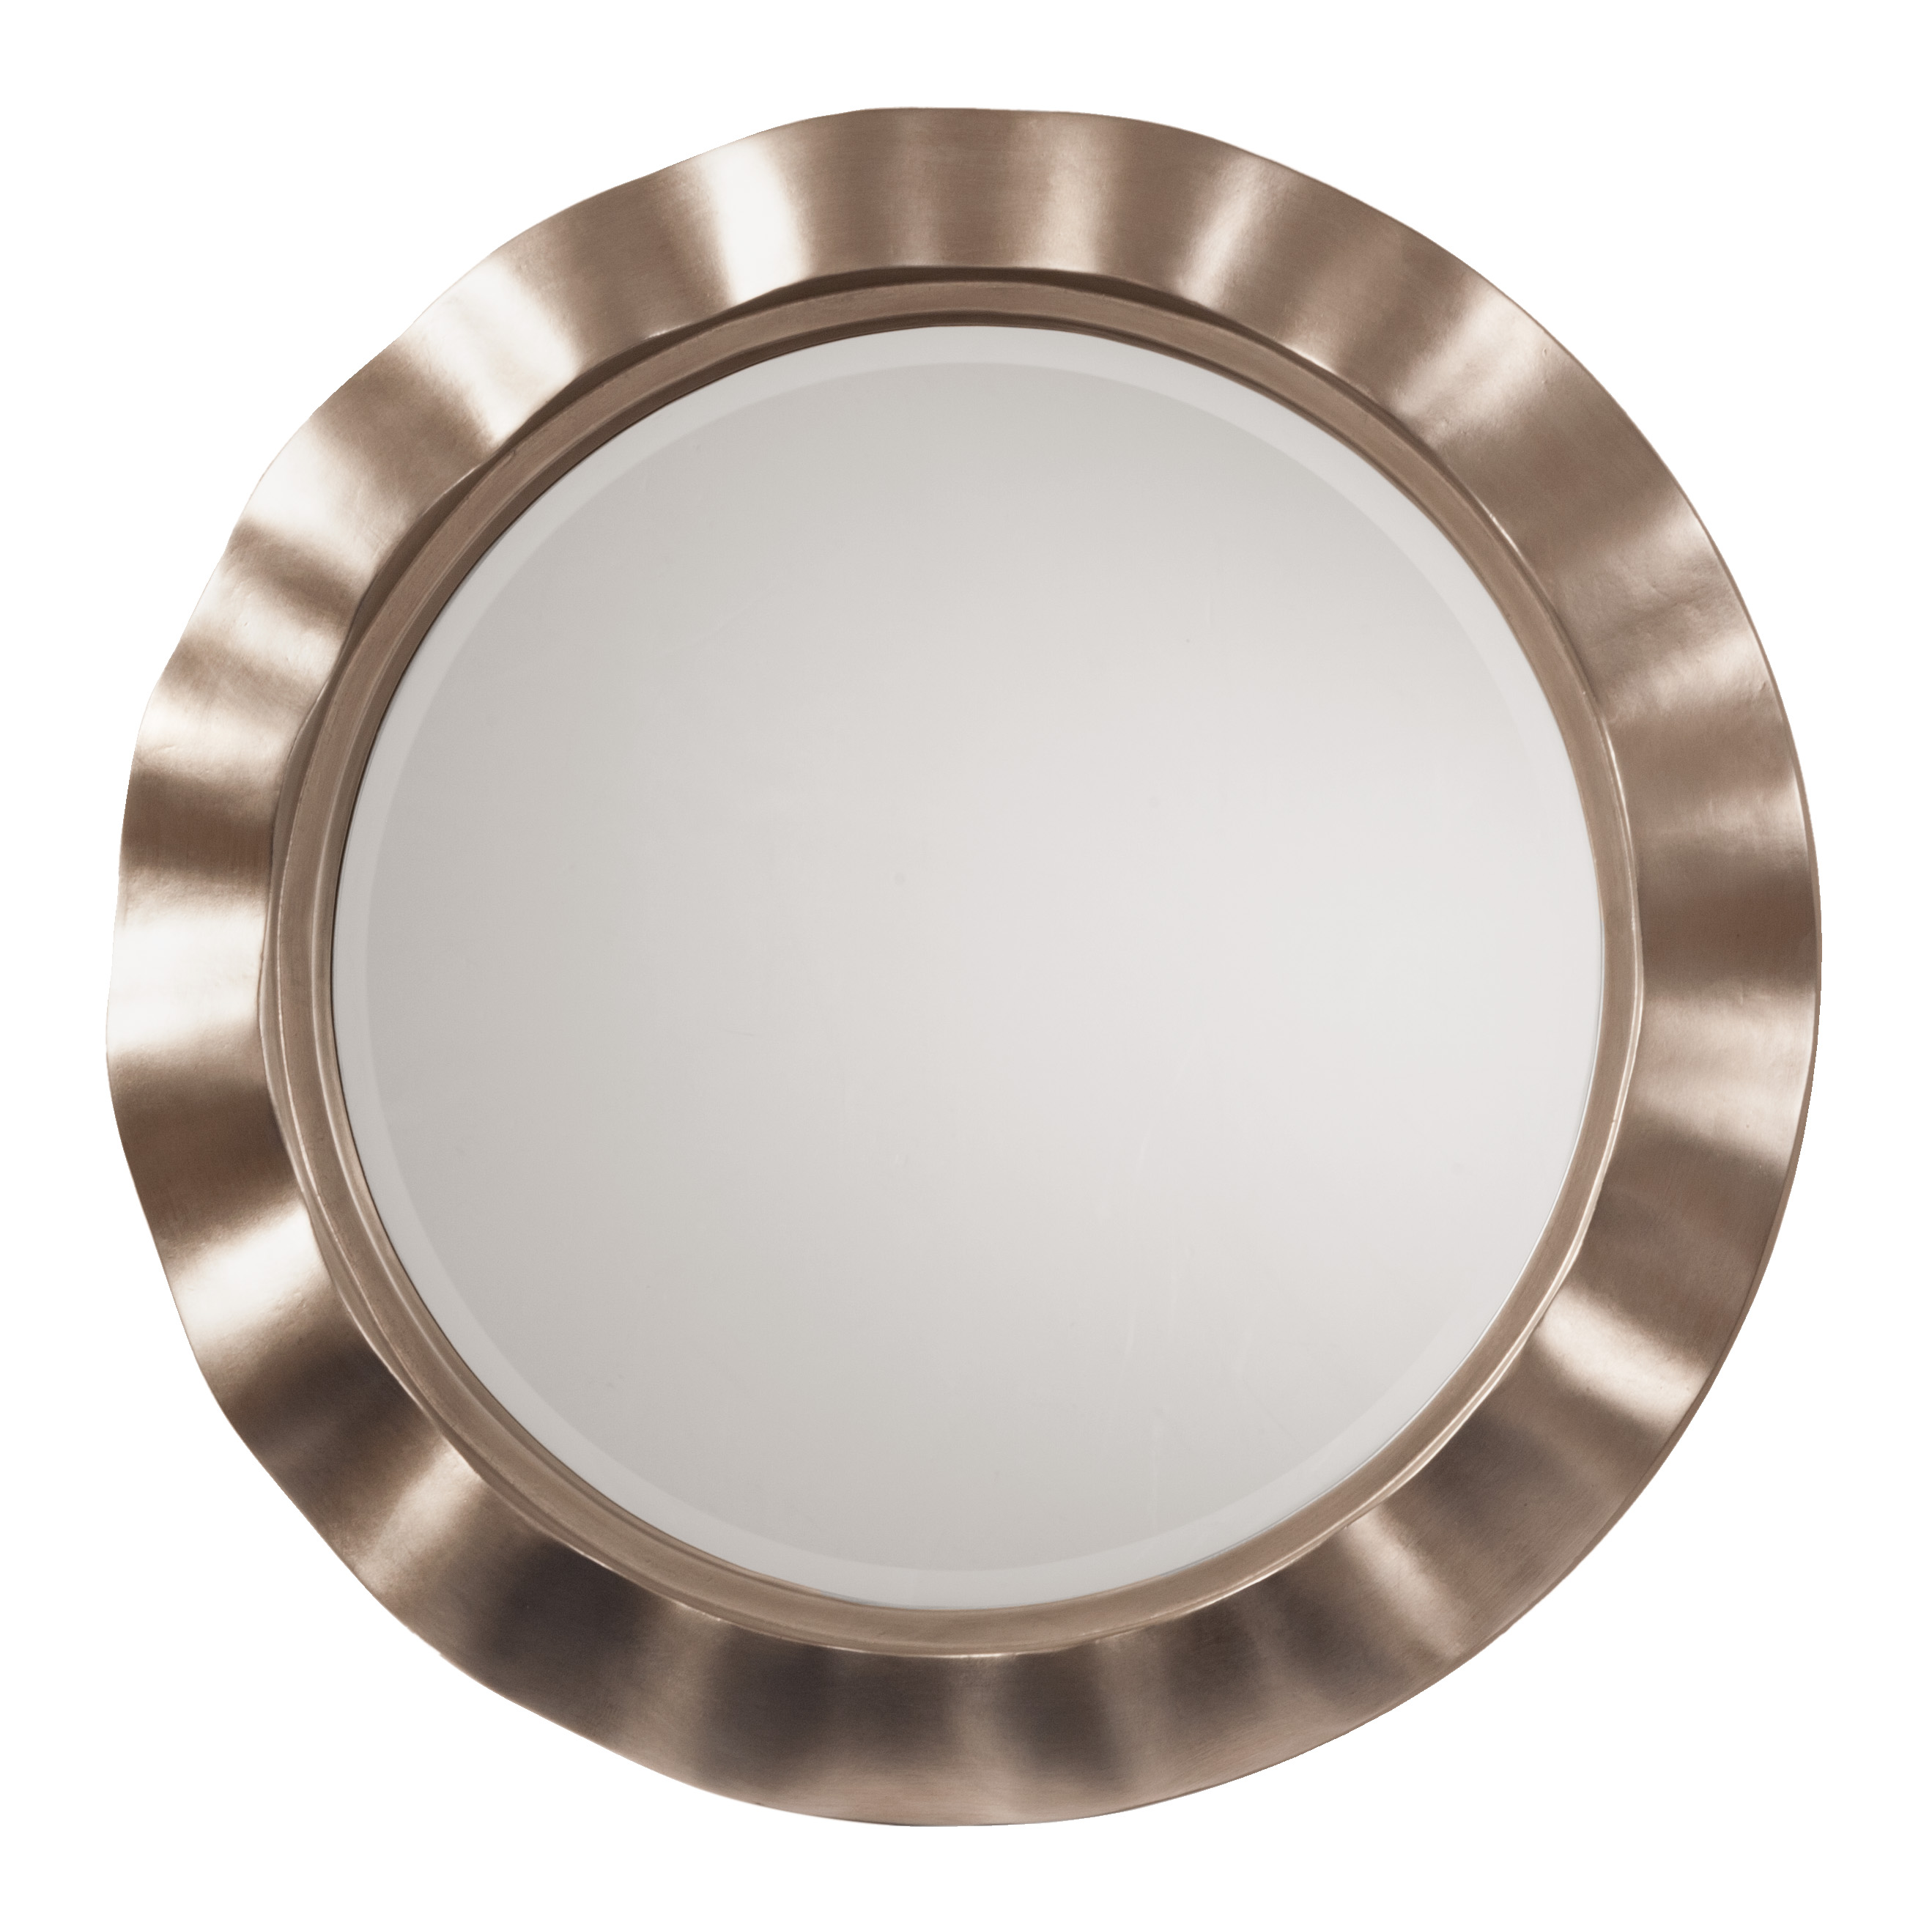 OSP Designs Cosmos Decorative Beveled Wall Mirror